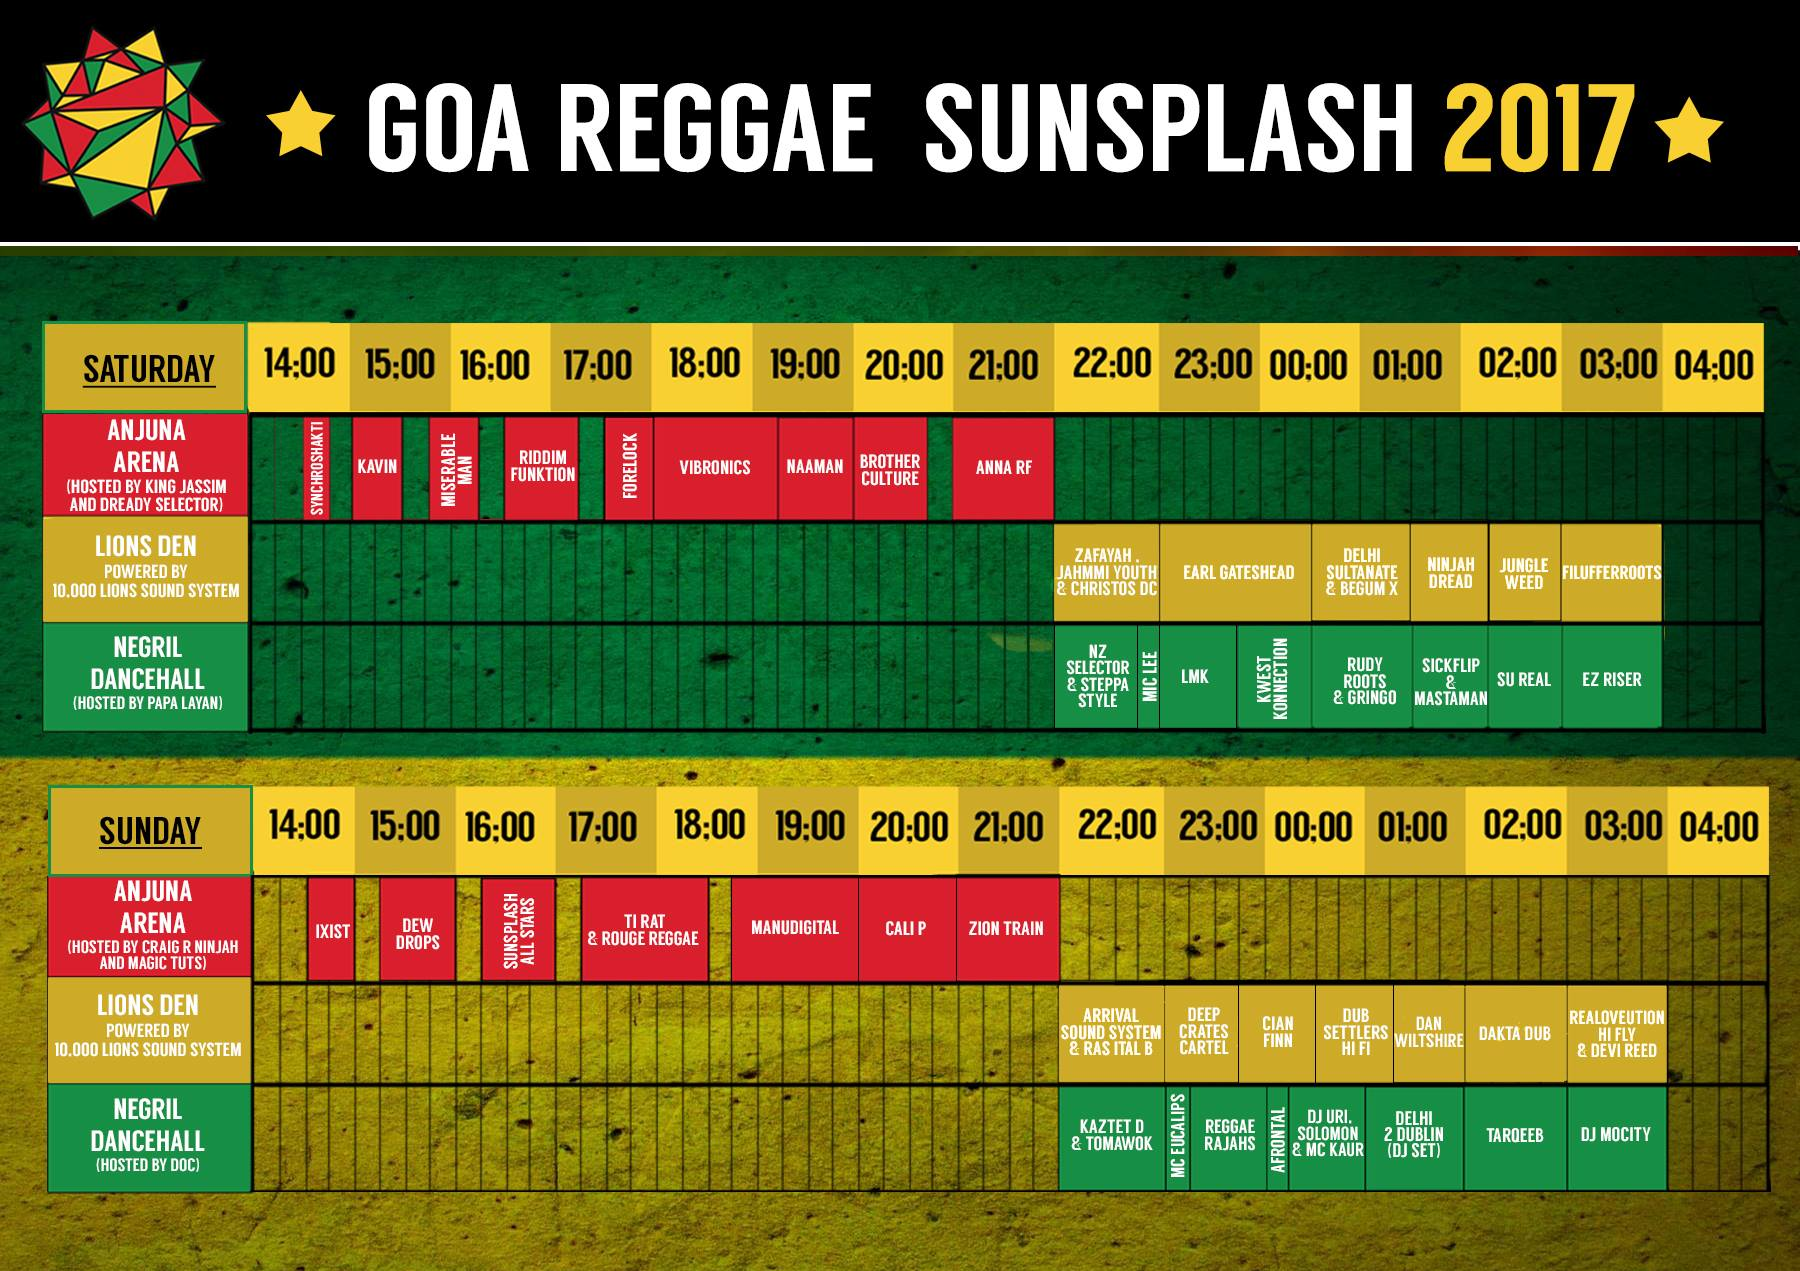 The final schedule for the Sunsplash Festival is here. Make sure you're at the right stage at the right time to catch your favorite artists and bands!